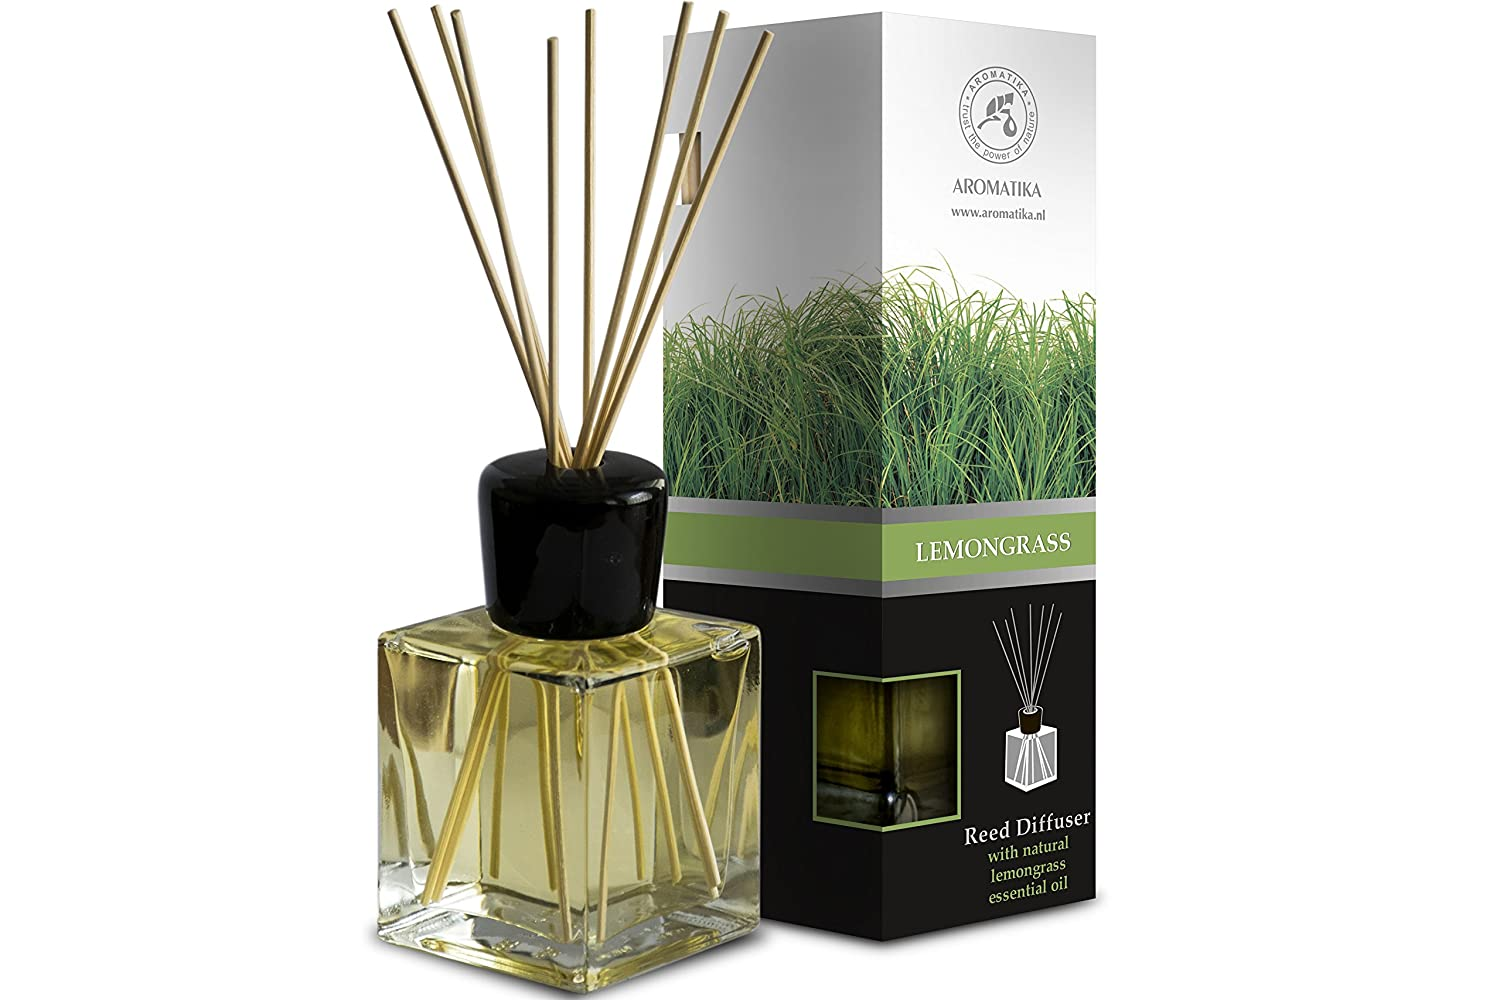 Lemongrass Reed Diffuser w/ Natural Essential Lemongrass Oil 100ml - Intensive - Fresh & Long Lasting Fragrance - Scented Reed Diffuser - 0% Alcohol - Diffuser Gift Set w/ 8 Bamboo sticks is the Best for Aromatherapy - SPA - Home - Kitchen - Bath - Of